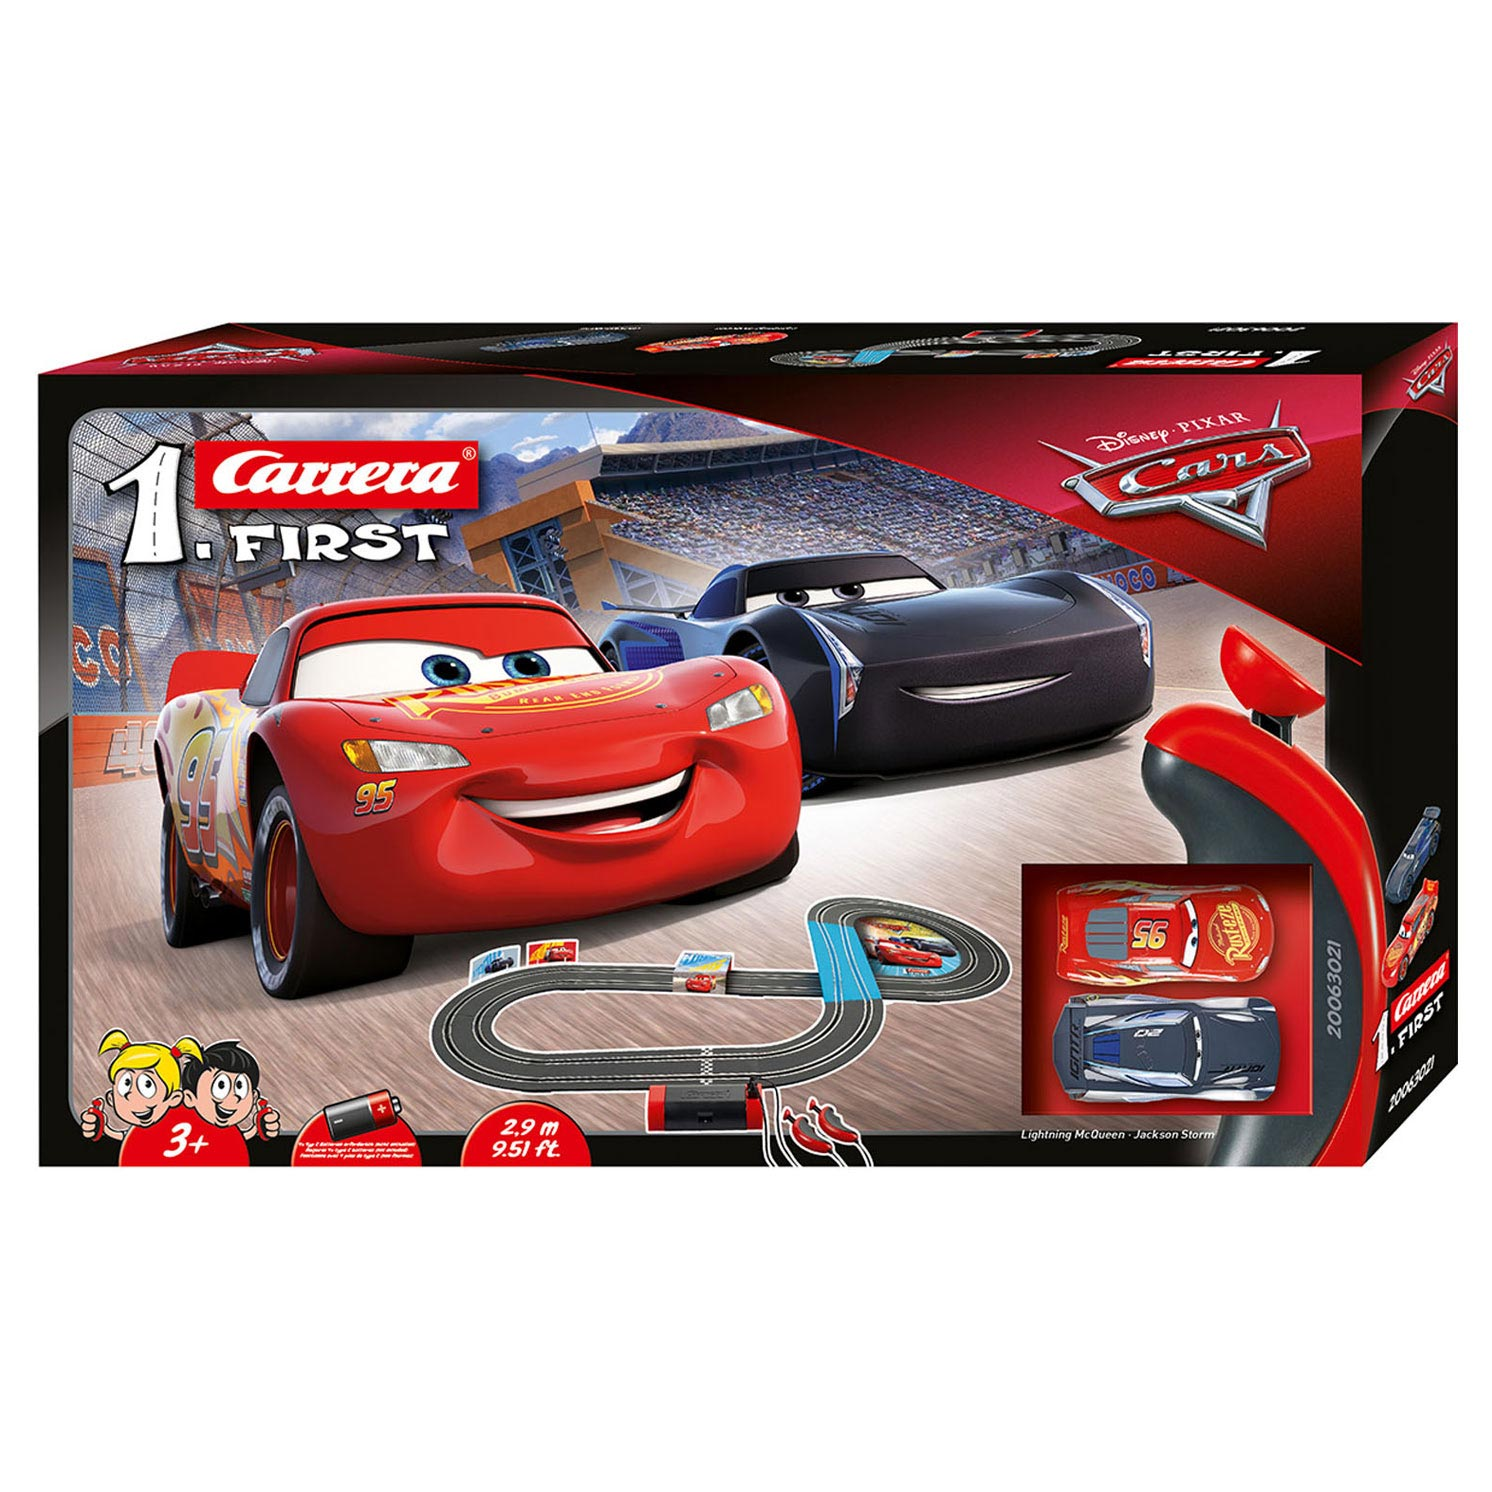 Carrera First Racebaan - Cars